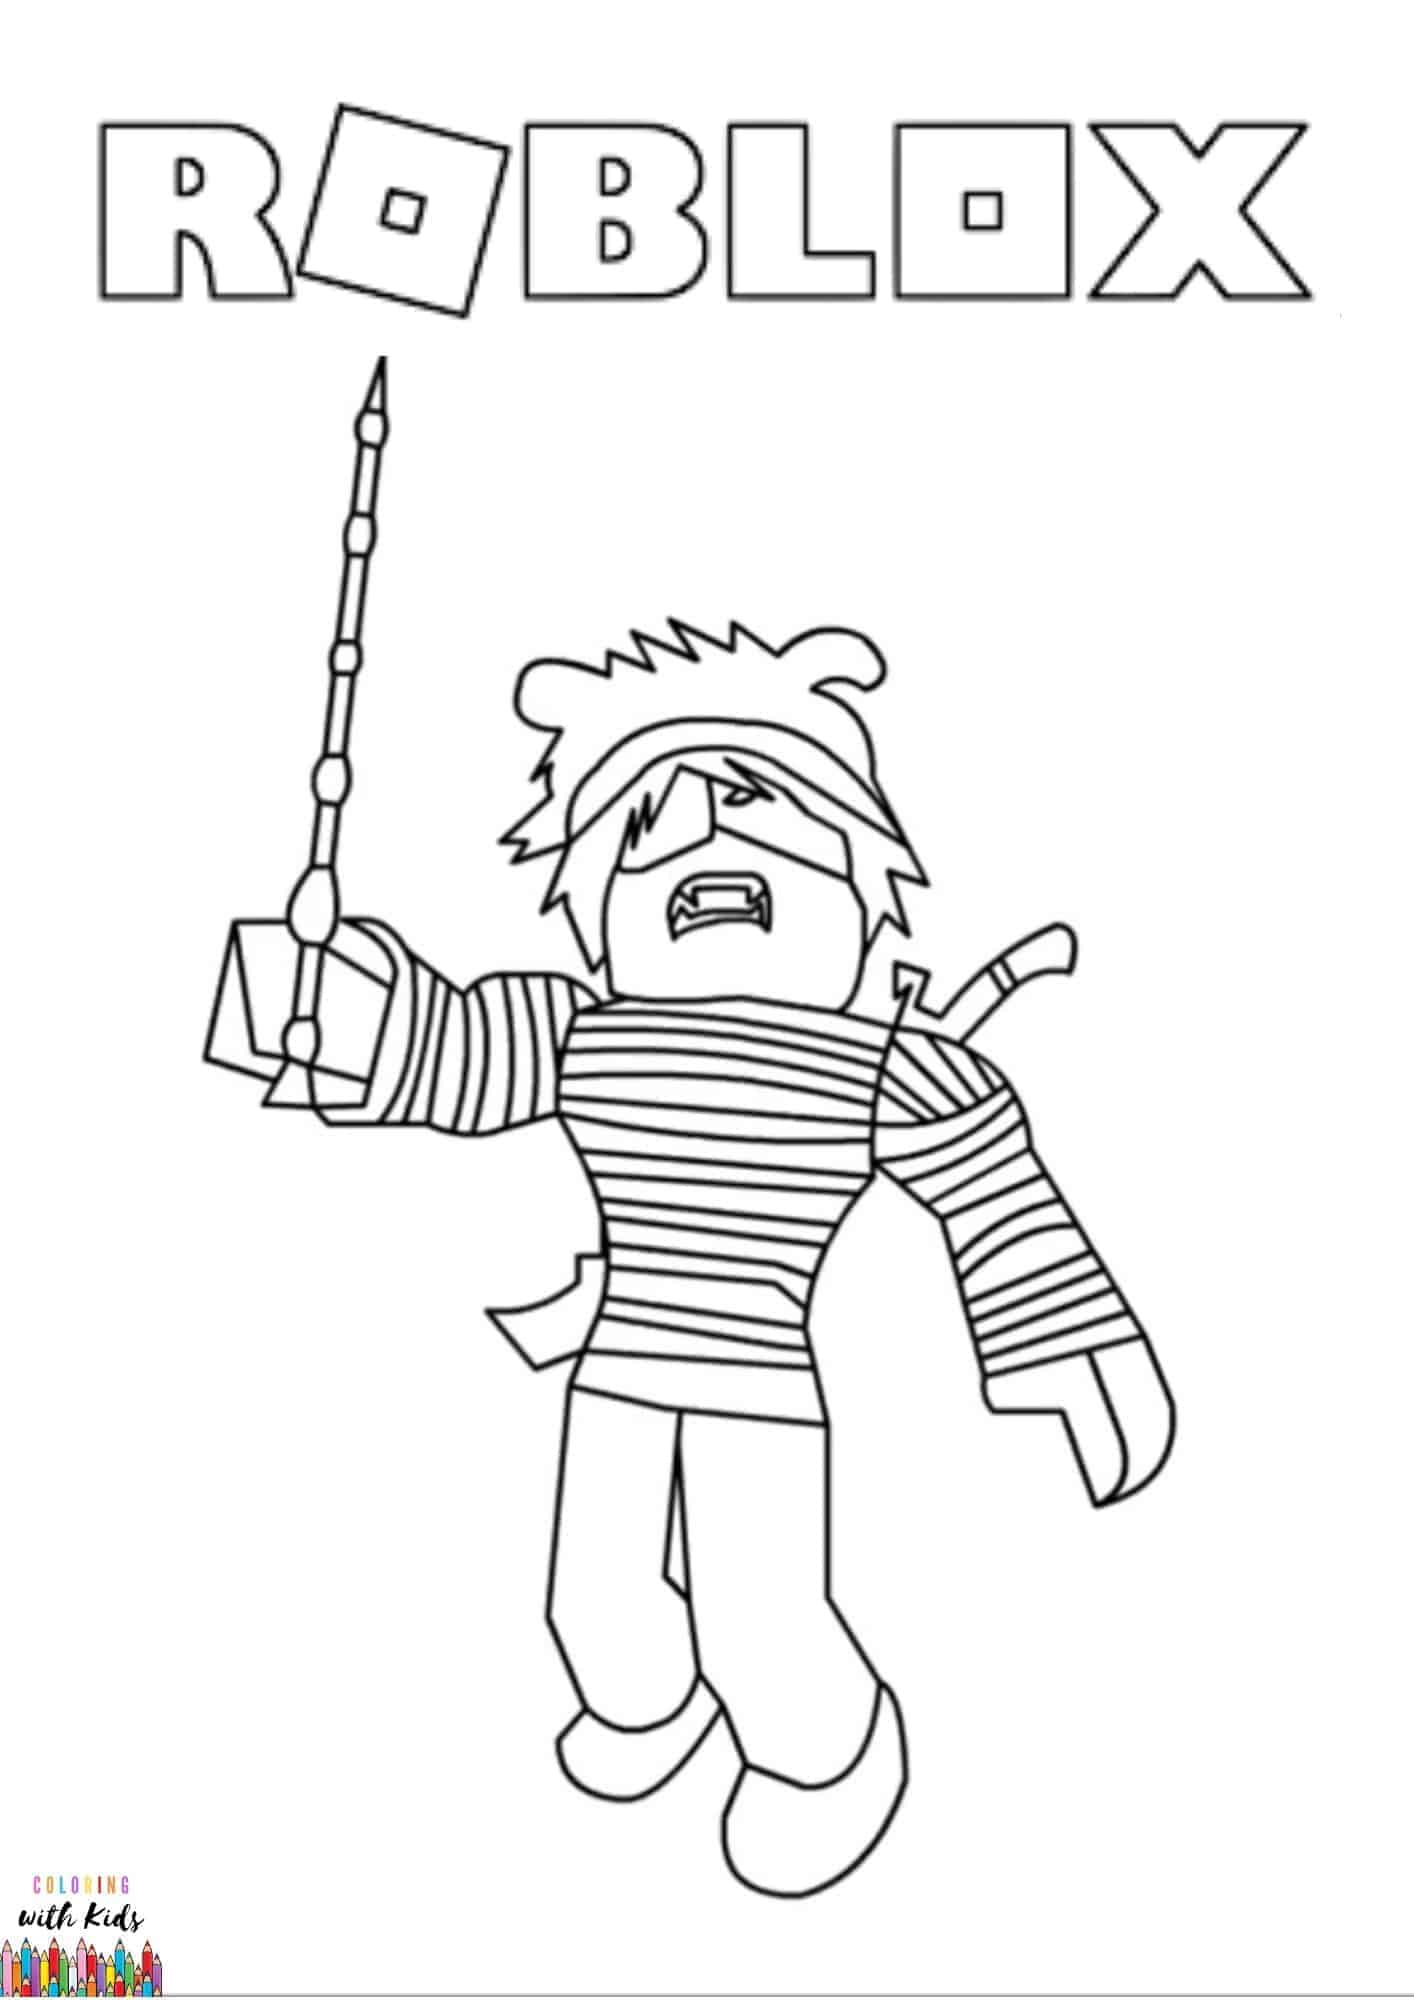 Free Printable Roblox Avatar Roblox Coloring Pages